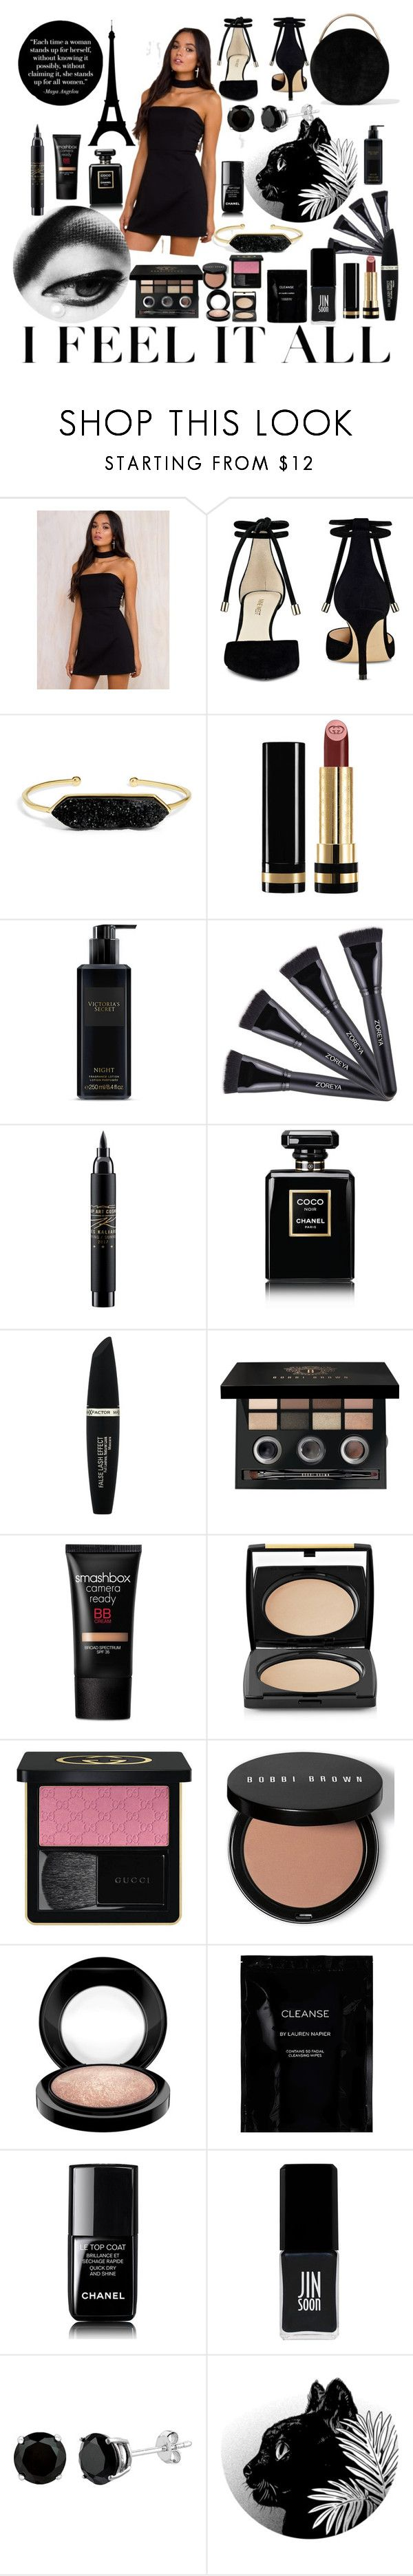 """lil black dress"" by manderzlmao ❤ liked on Polyvore featuring Nine West, BaubleBar, Gucci, Victoria's Secret, MAC Cosmetics, Chanel, Max Factor, Bobbi Brown Cosmetics, Smashbox and Lancôme"